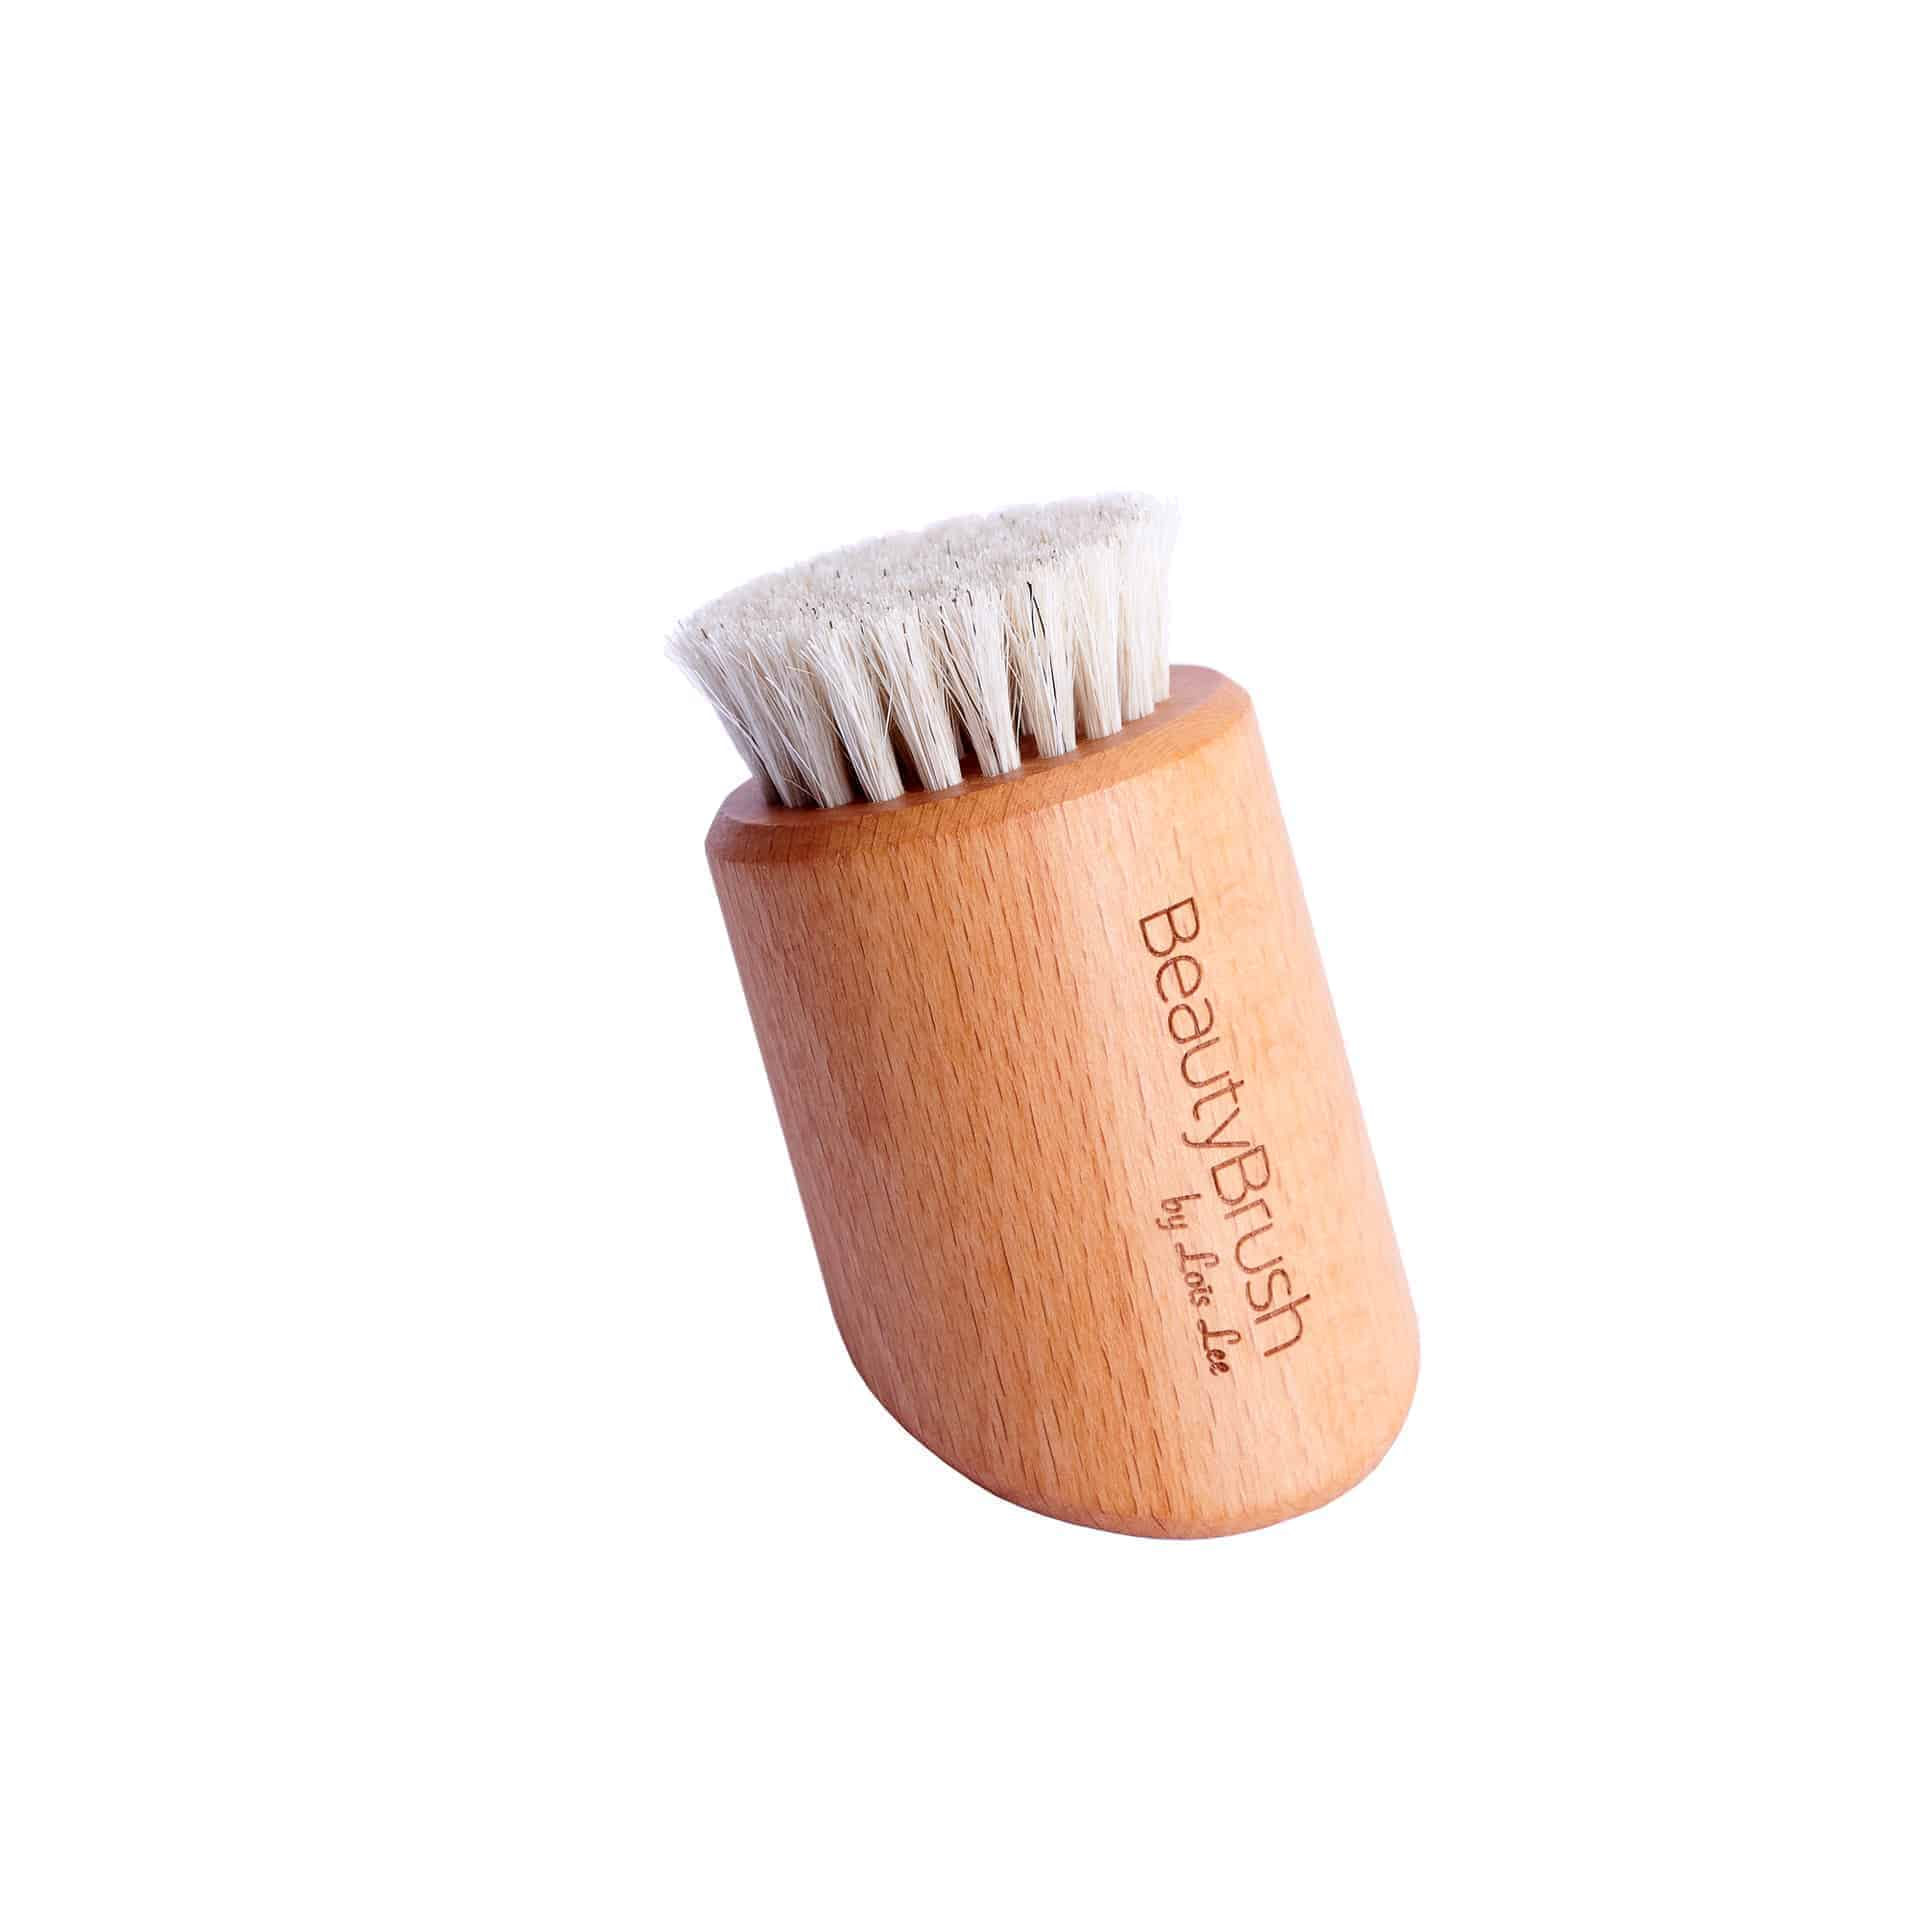 Facial BeautyBrush Lois Lee Pure Skinfood